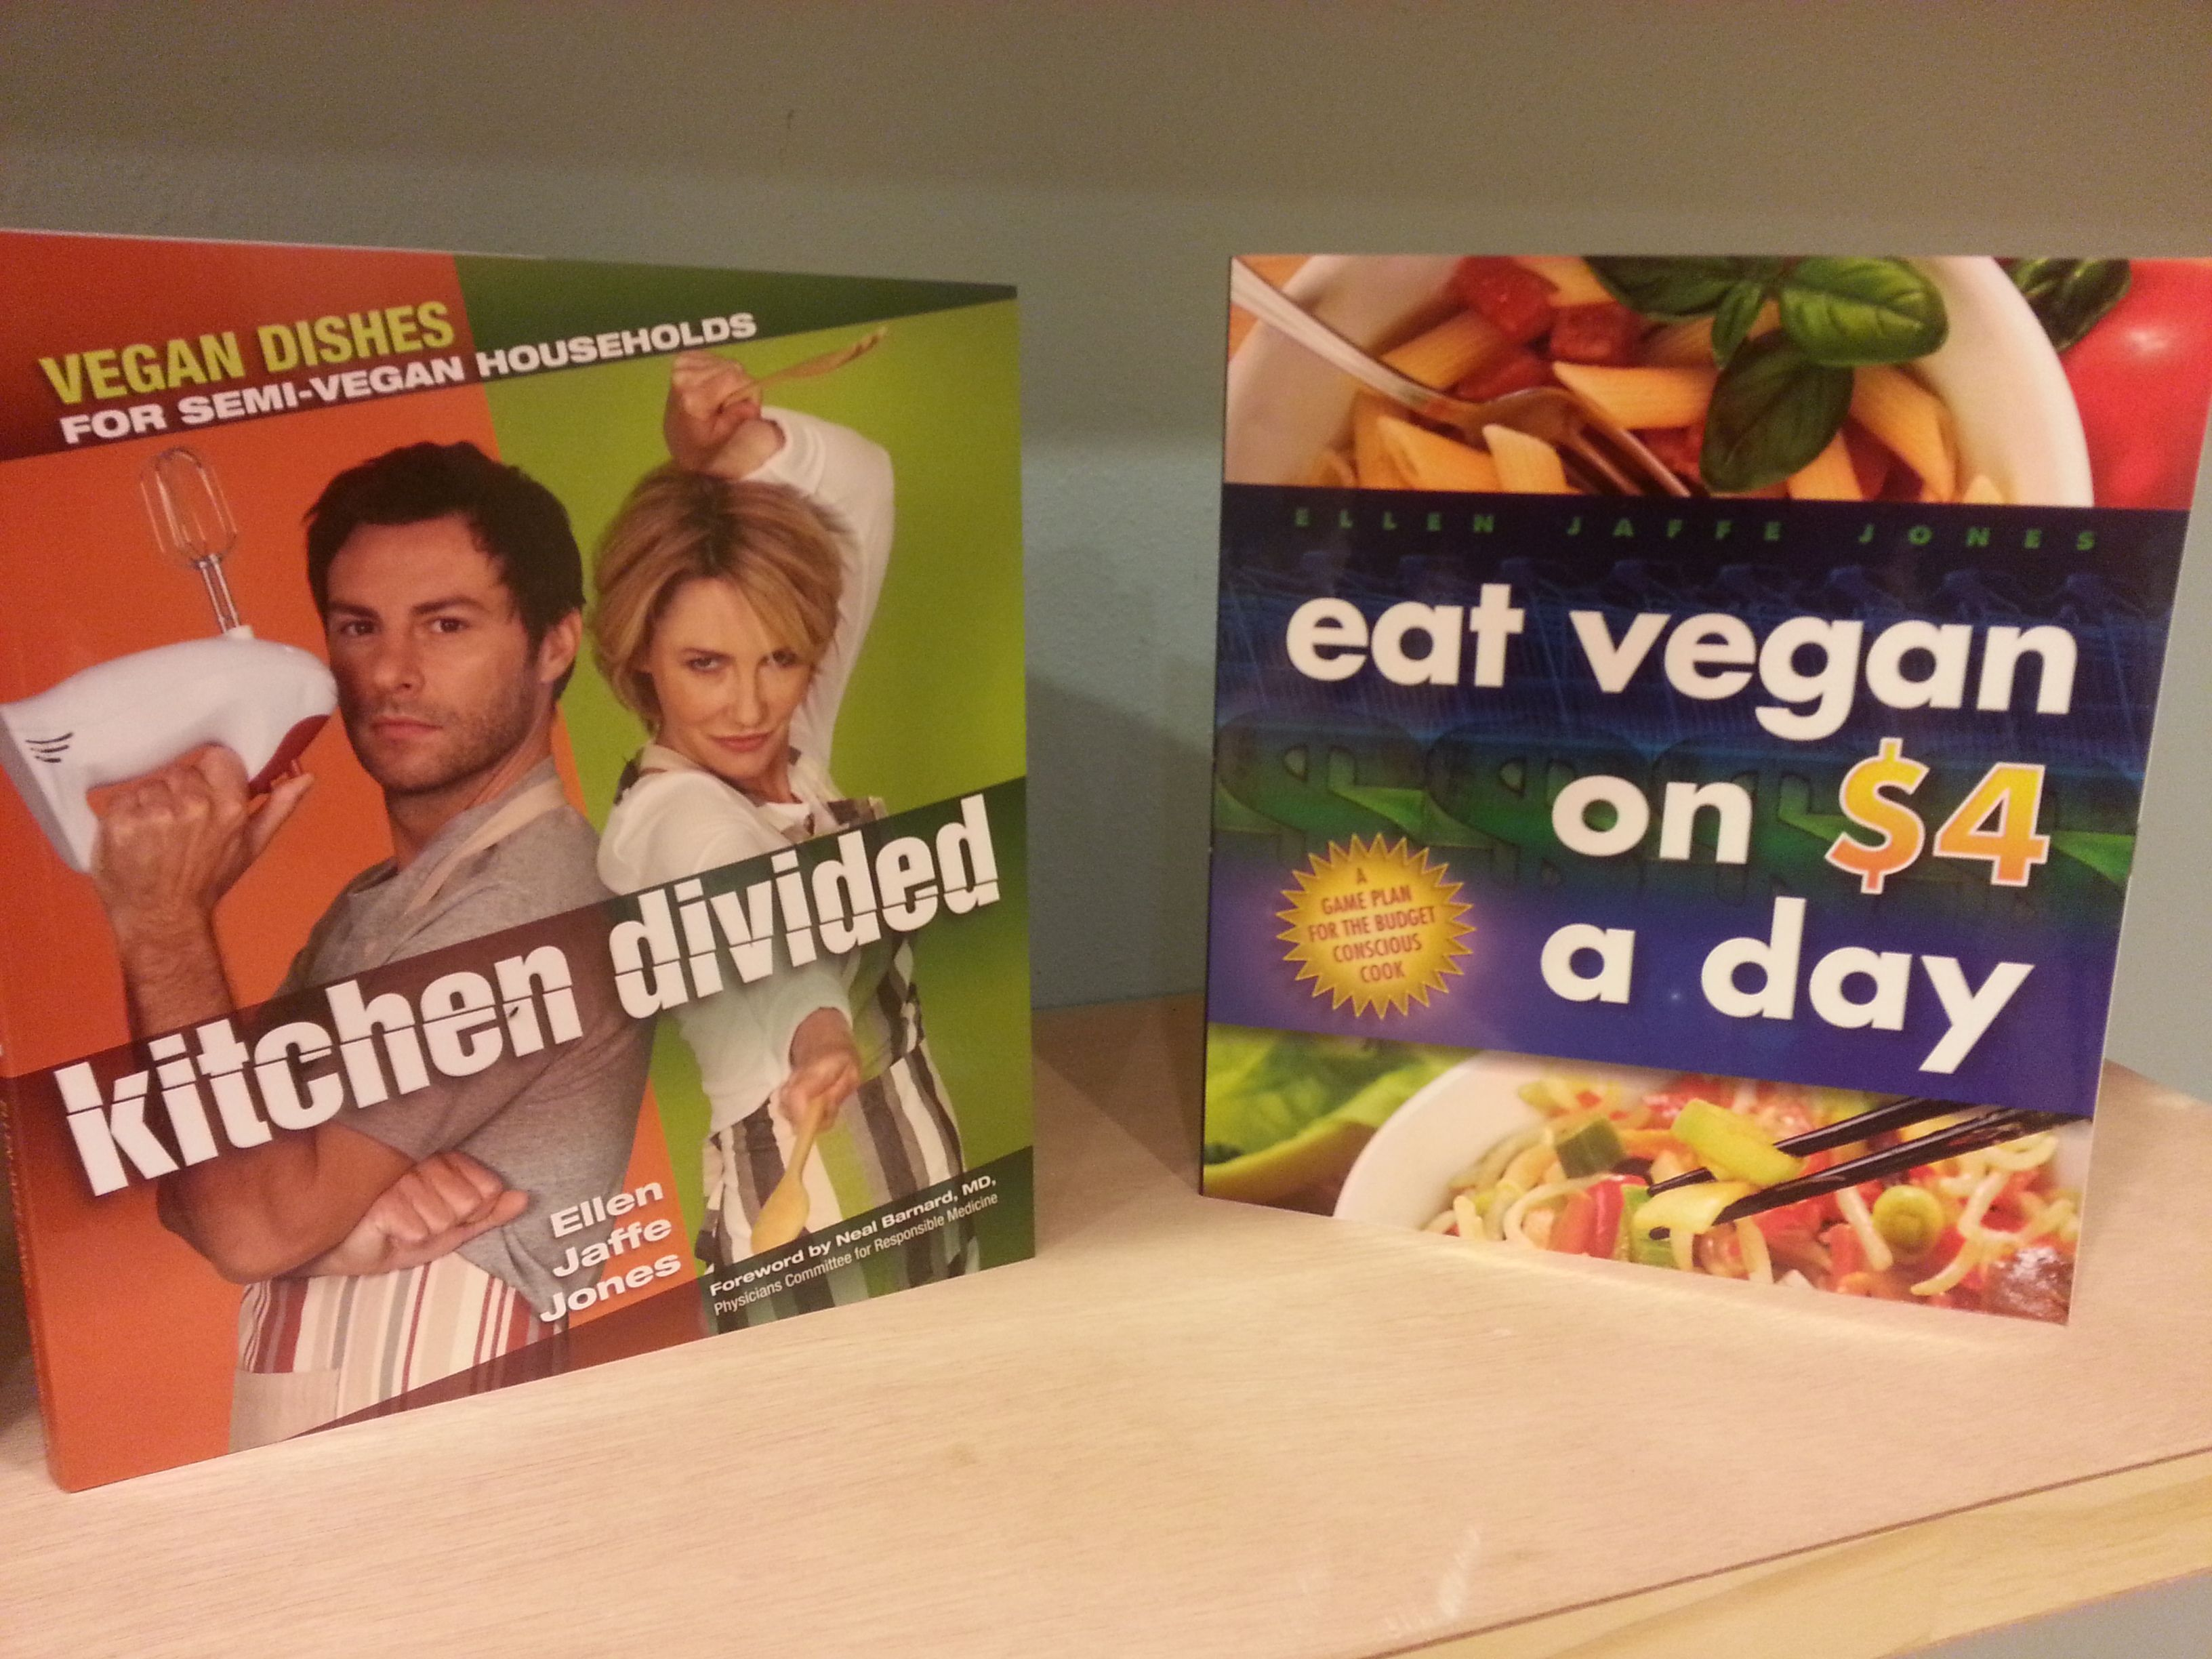 Eat Vegan on $4 a day, and Kitchen Divided. Vegan Cookbooks